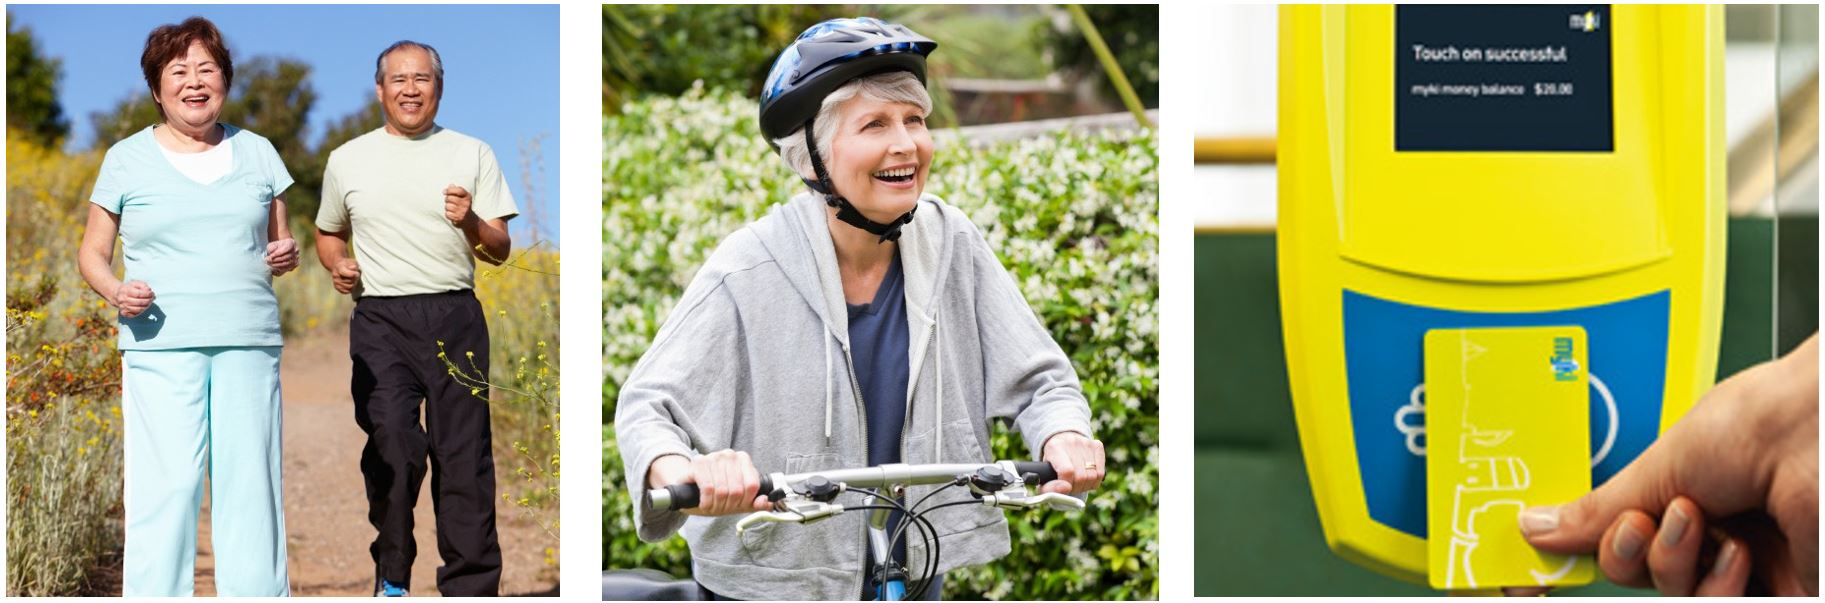 An elderly couple walking and smiling, a lady riding a bicycle, closeup of a myki card